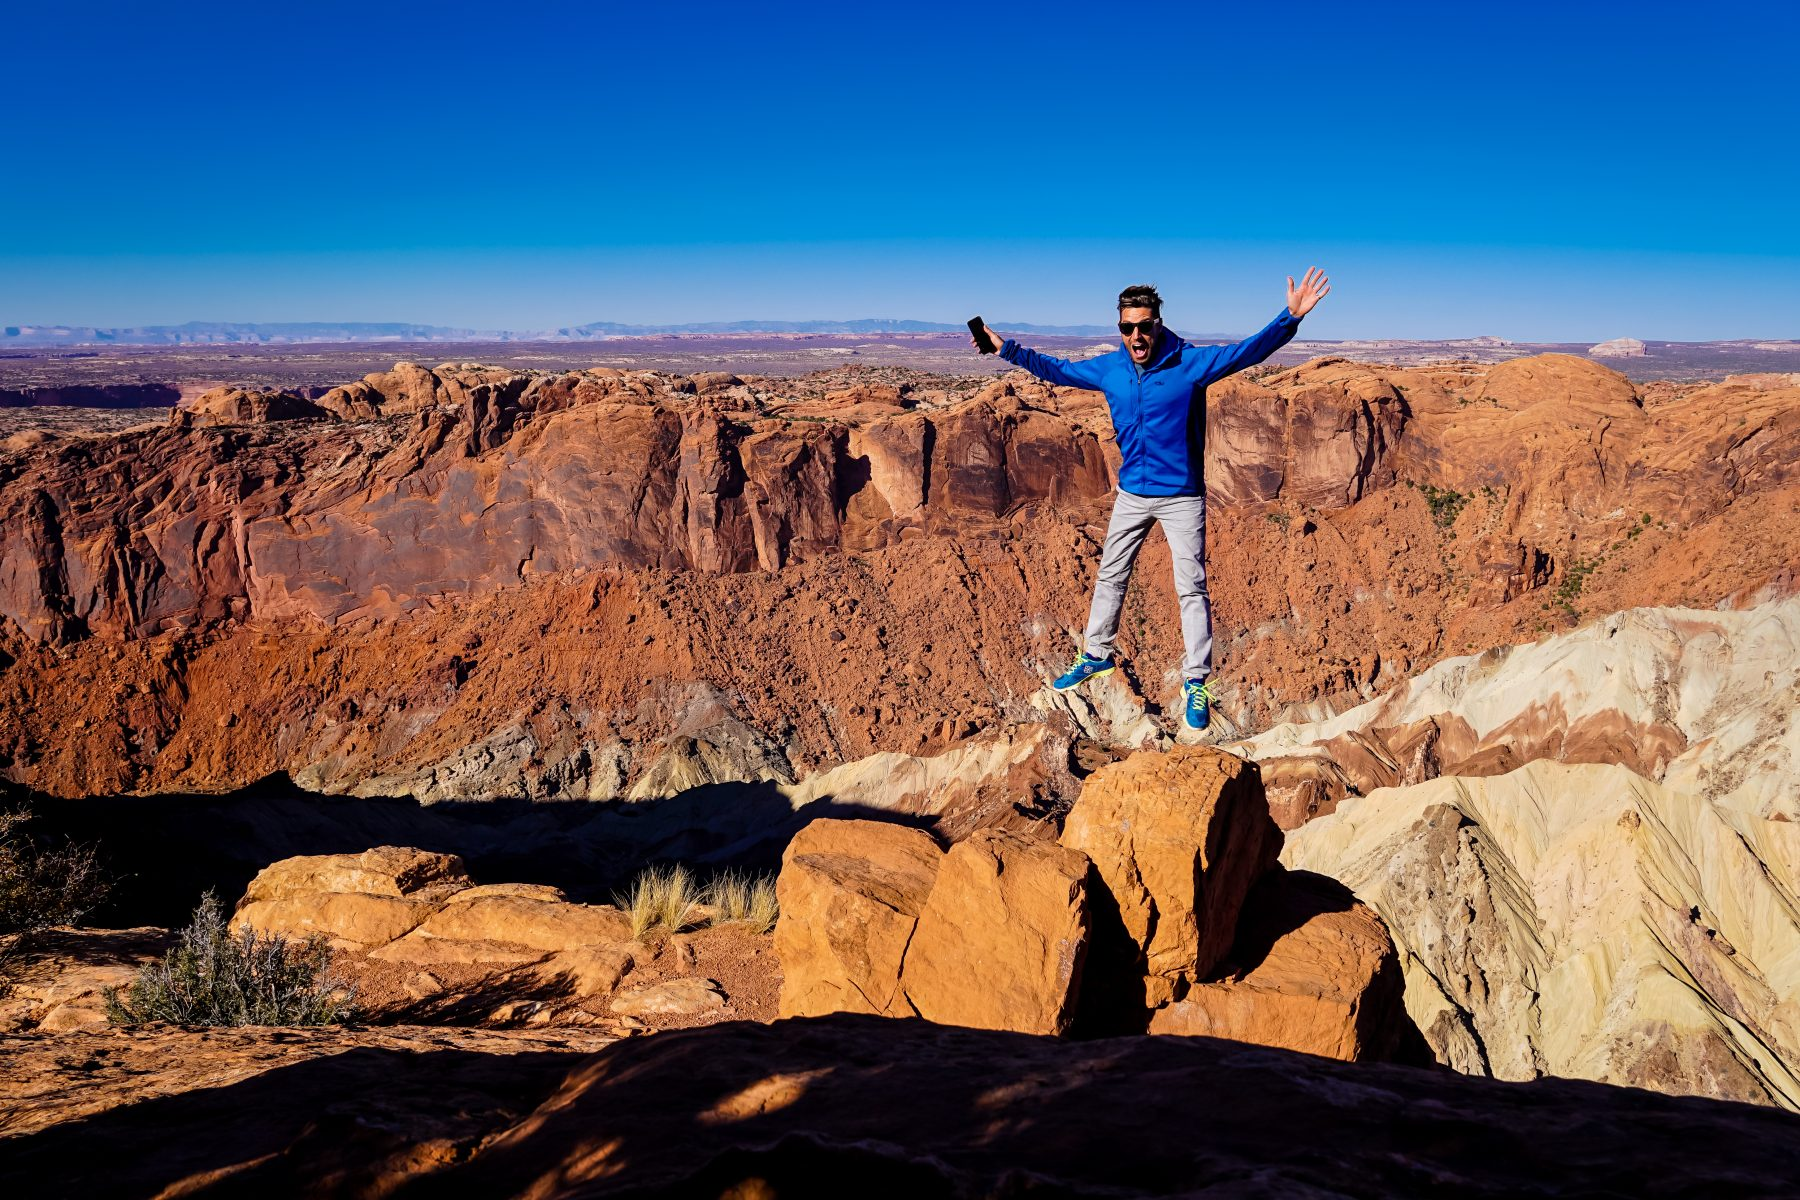 I was pretty excited to be on the rim of Upheaval Dome.